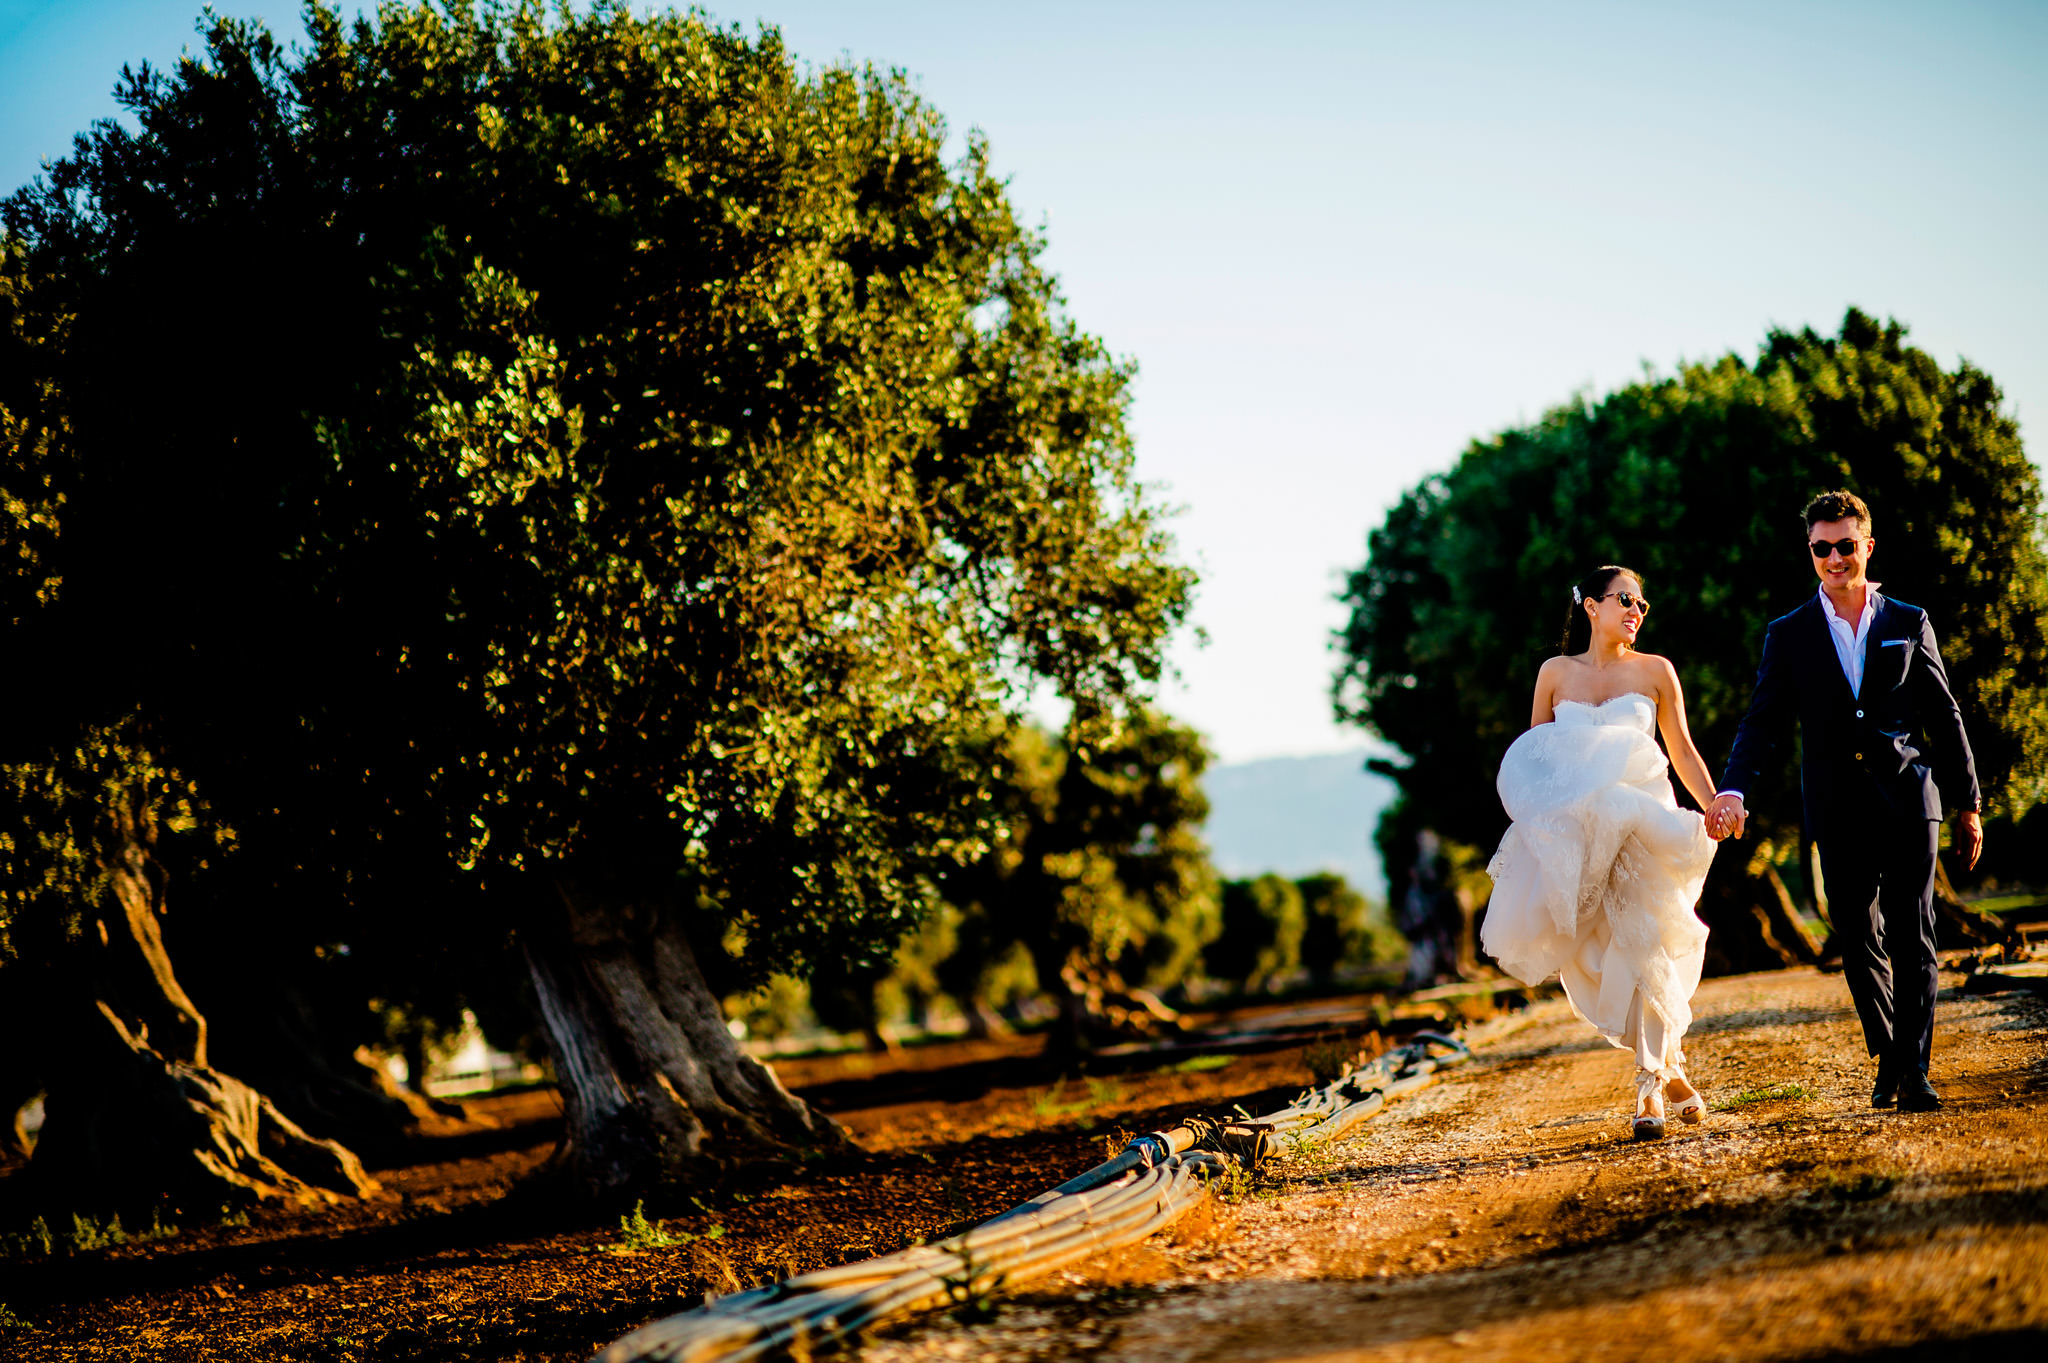 Lily and David's wedding at Borgo Egnazia in Puglia, Italy.